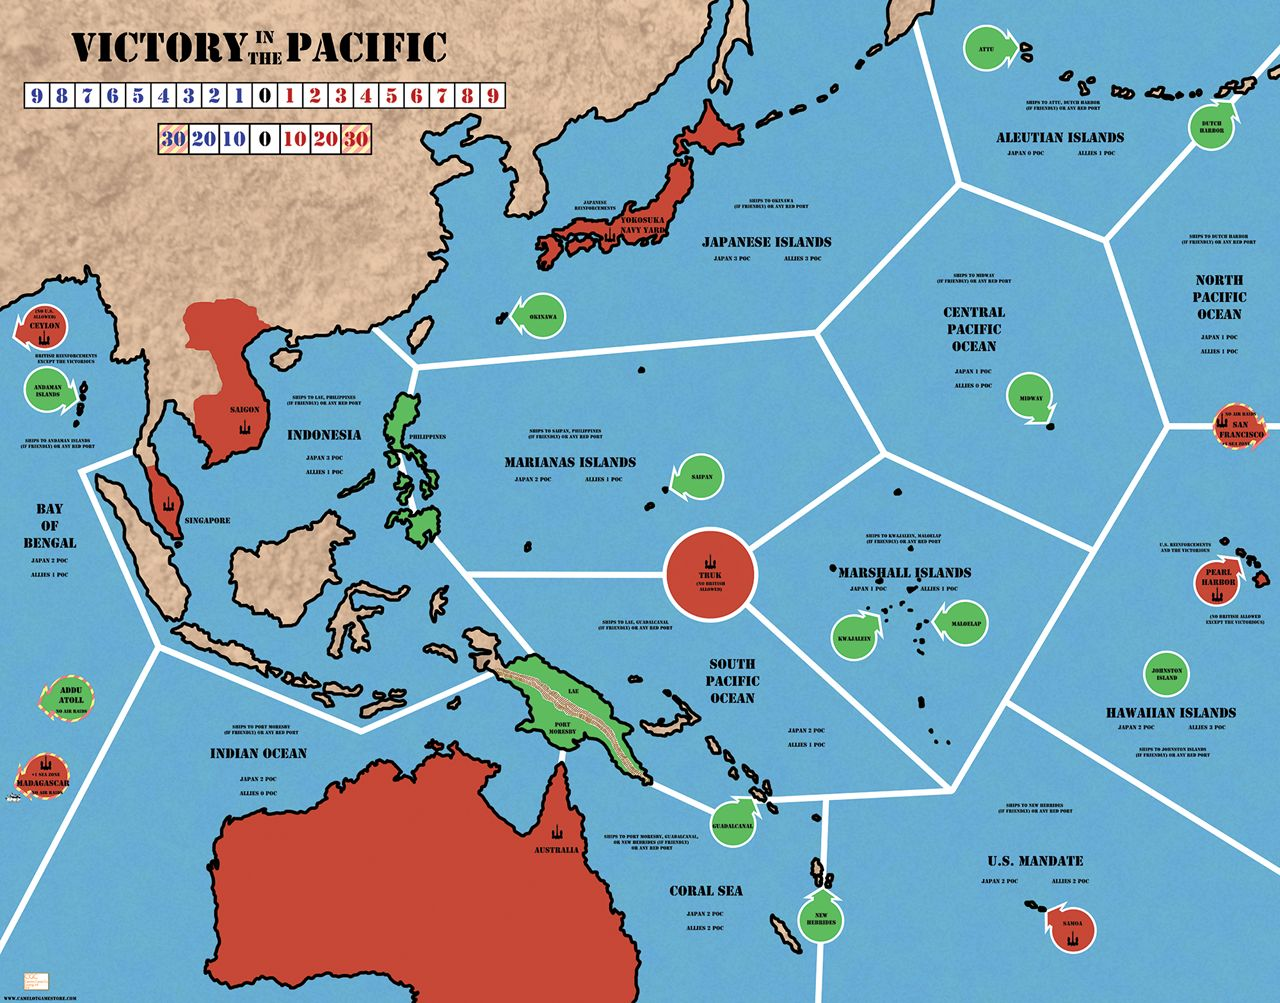 victory in the pacific Victory in the pacific (vitp) is a board wargame published by the avalon hill game company in 1977 based on the game system first used in war at sea, also published.